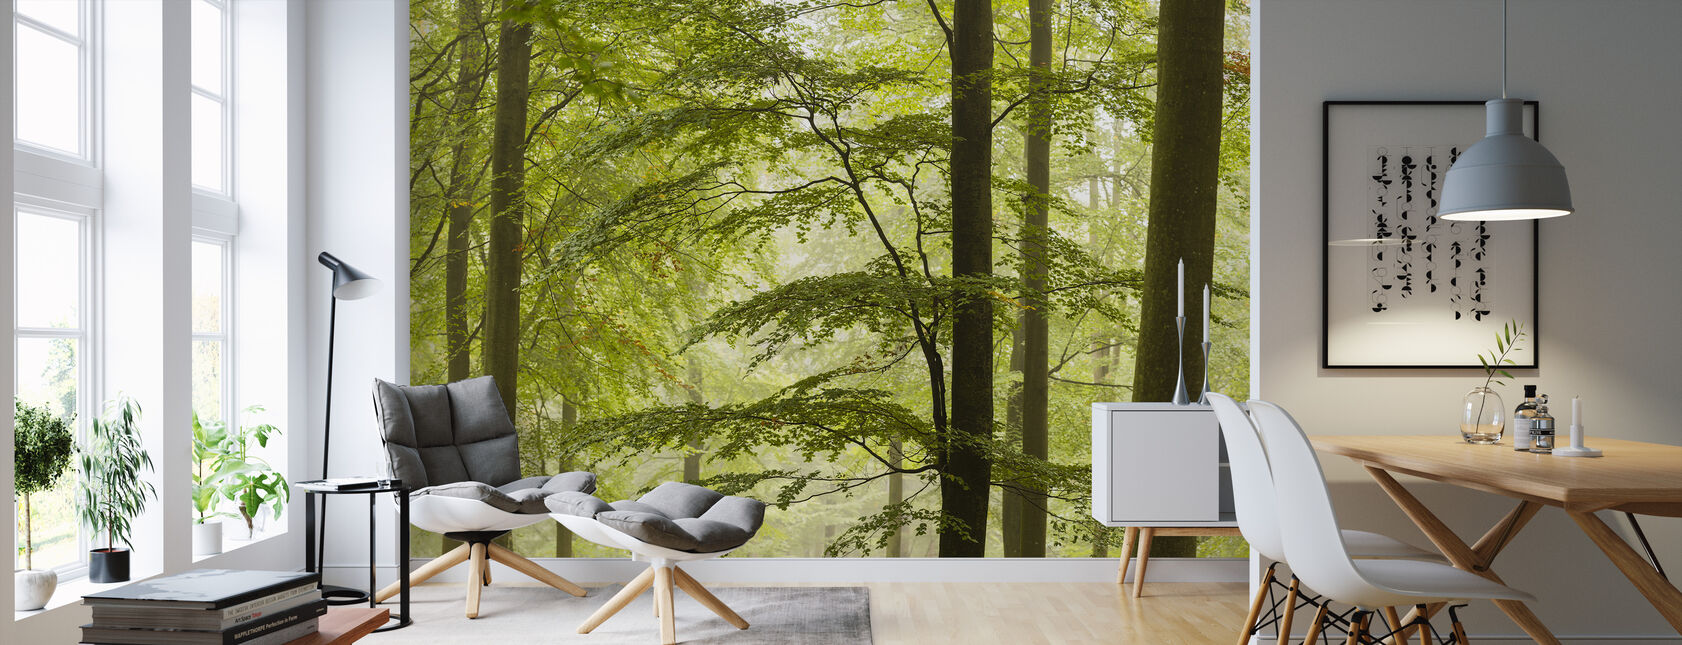 Beech Forest in Torup, Sweden II, Europe - Wallpaper - Living Room